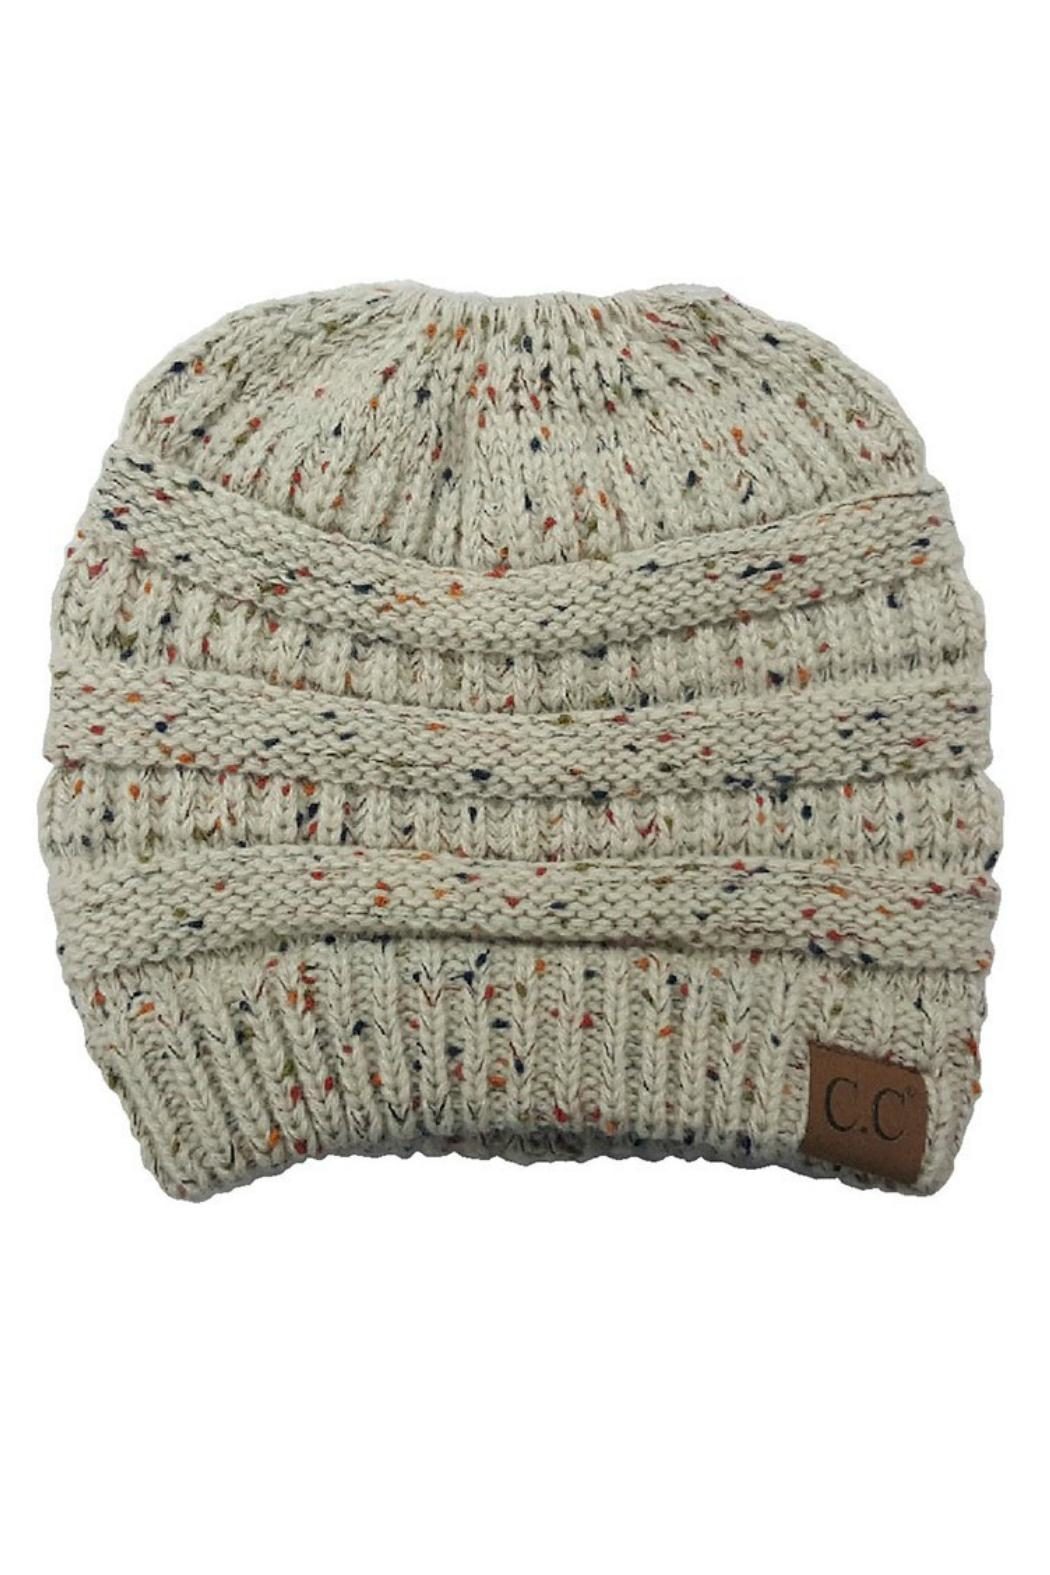 CC Beanie Confetti Cc Beanie from California by Apricot Lane ... 2480e9ef459